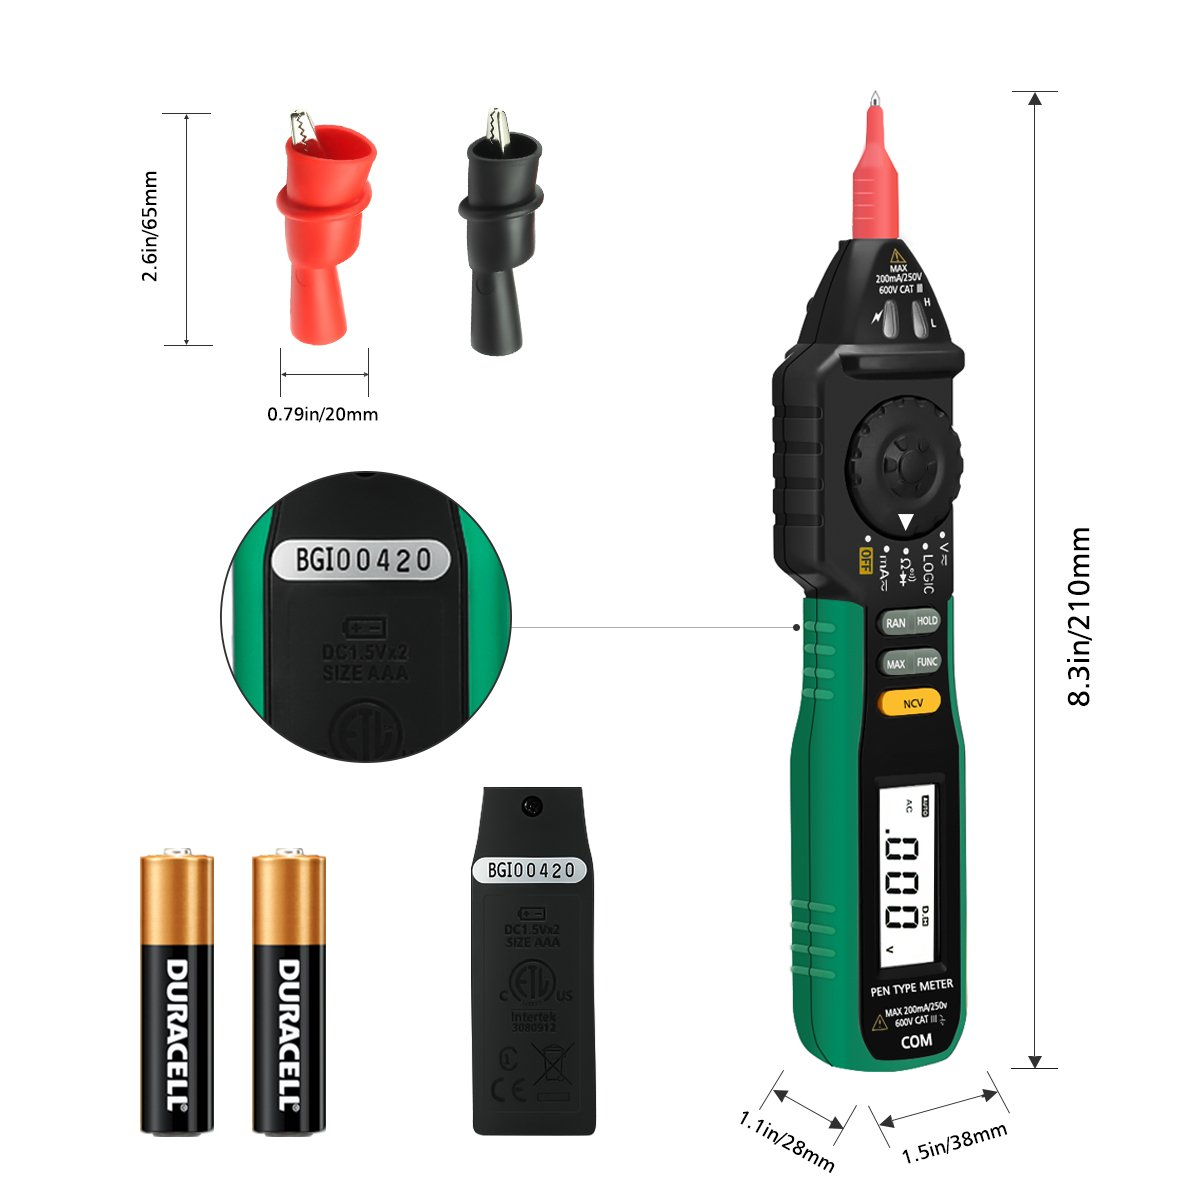 Digital Multimeter, LIUMY Pocket size Pen Multimeter with NCV and Auto Ranging, AC DC Voltage Tester, Electrical Tester, Current/ Diode/ Continuity/ Logic by LIUMY (Image #8)